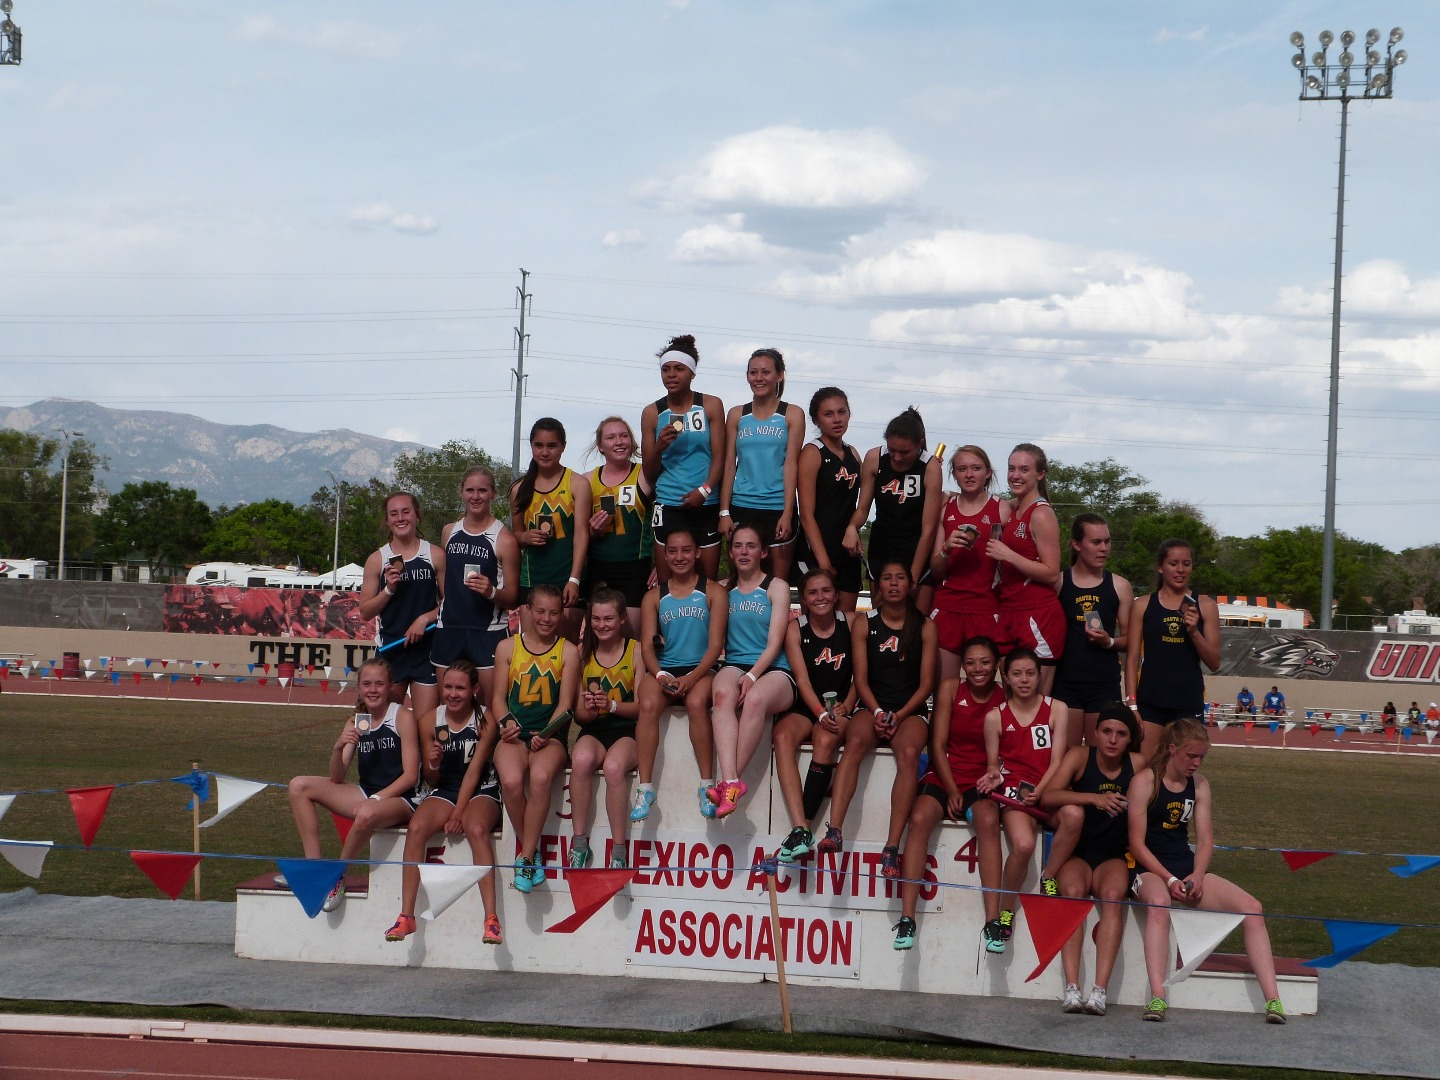 Girl's track team winners on podium